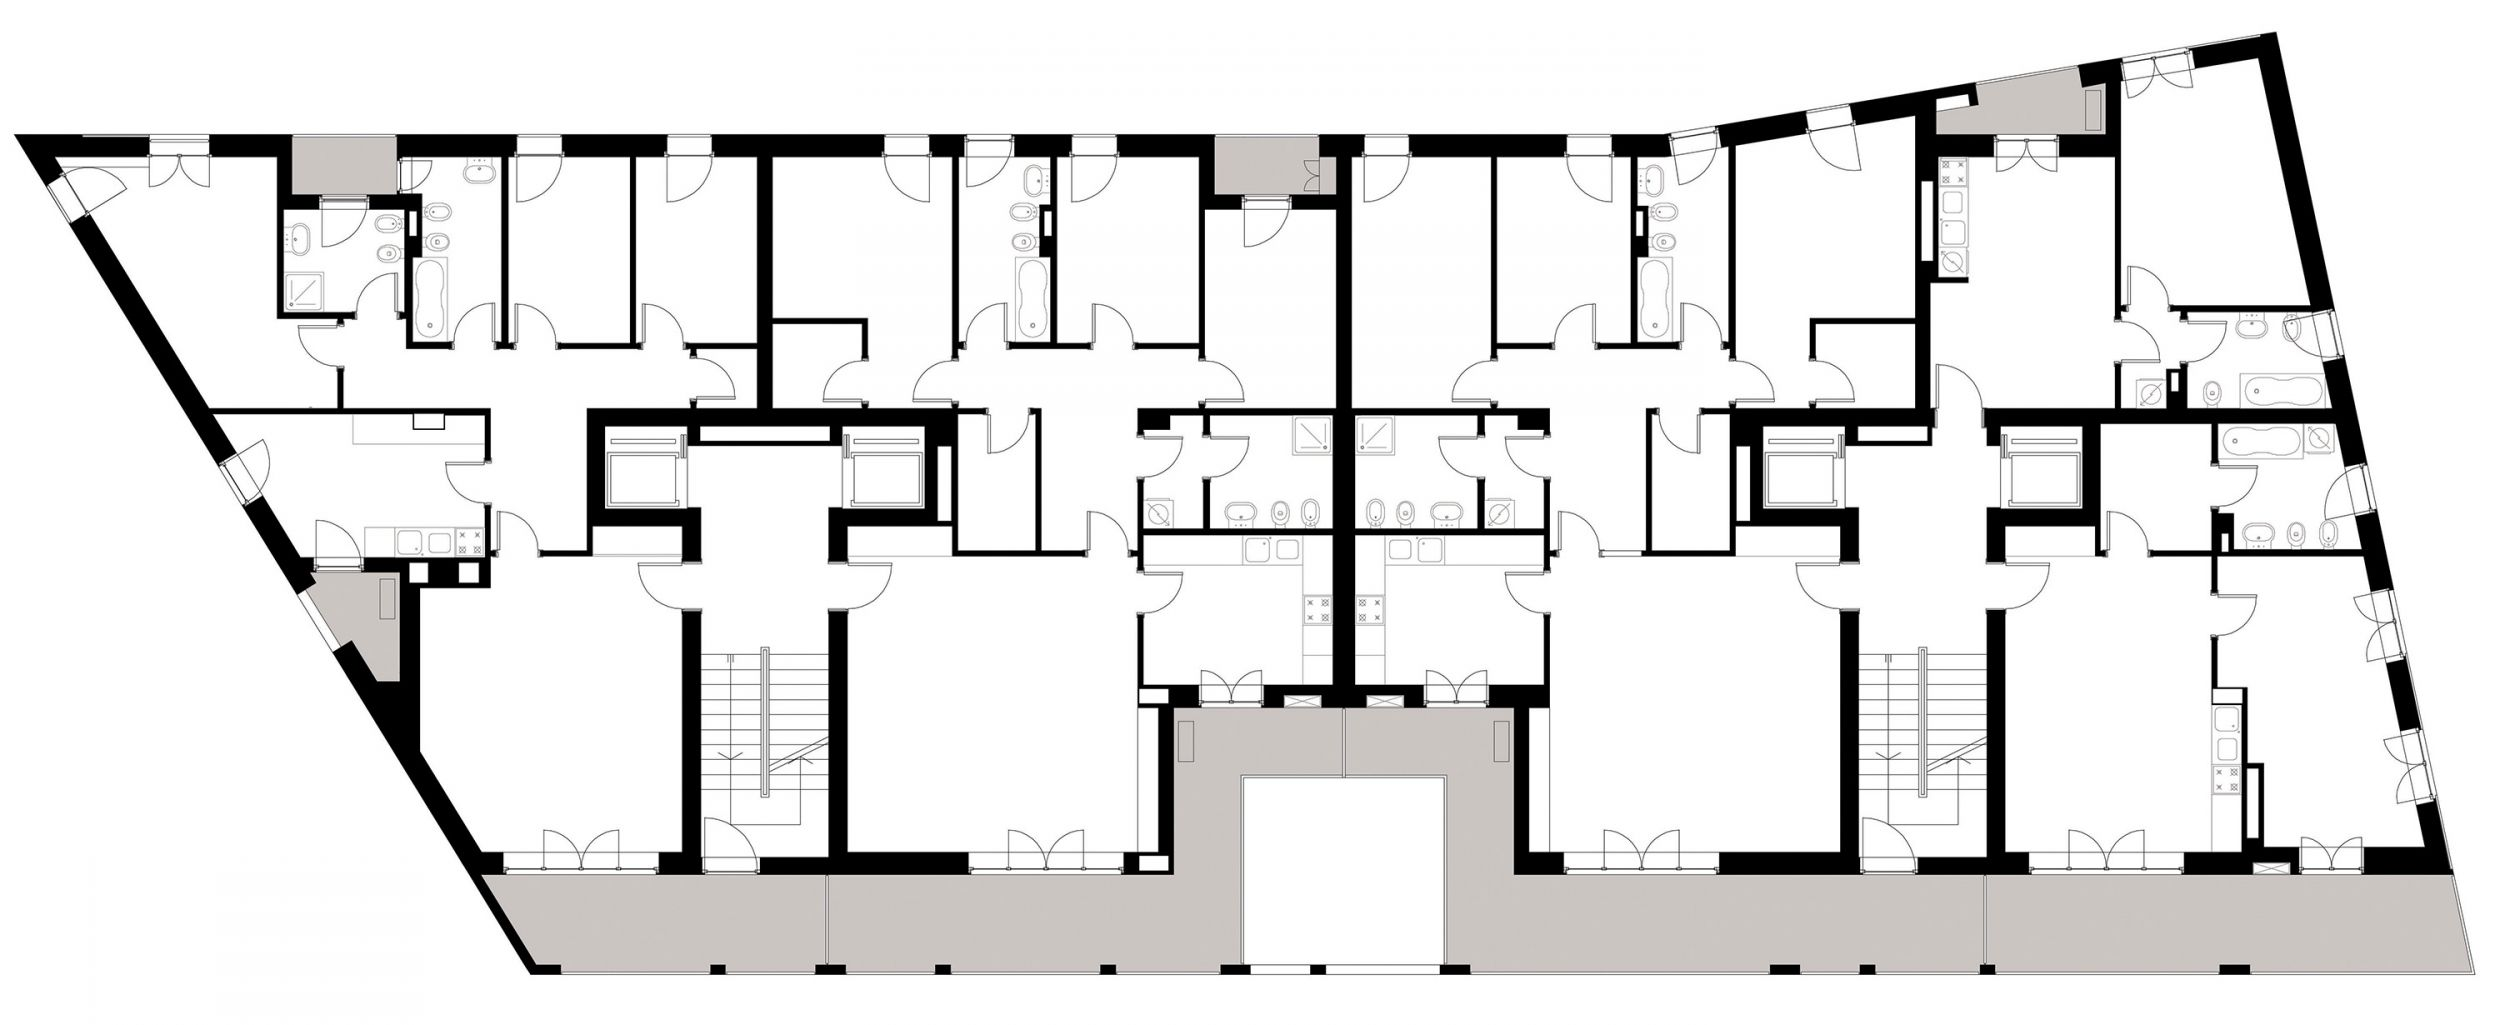 1/7 Typical floor plan